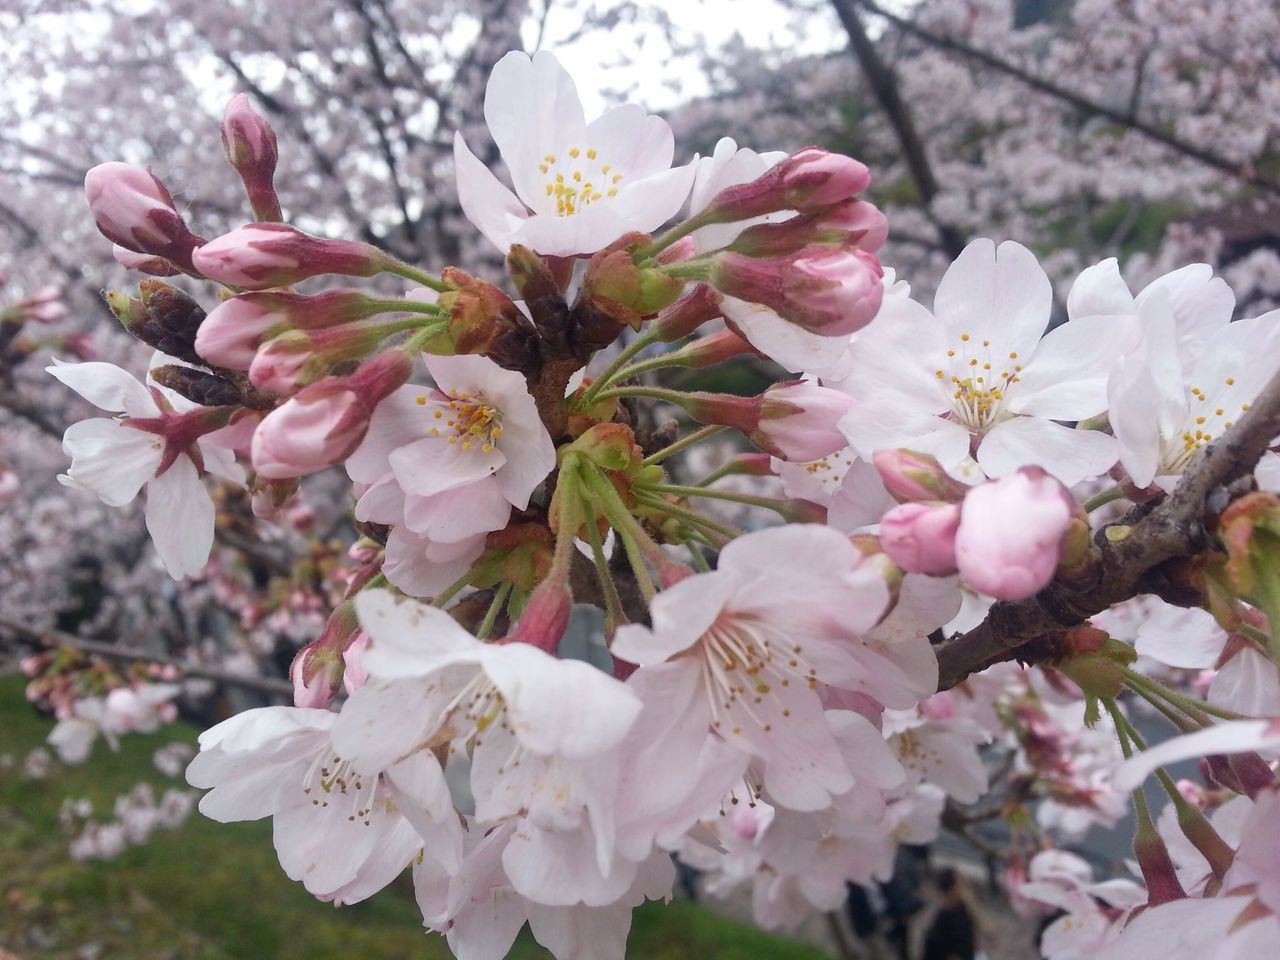 Spring Flowers Flower Nature Petal Beauty In Nature Flower Head Pink Color Close-up Blossom Sakura Japan Kyoto City